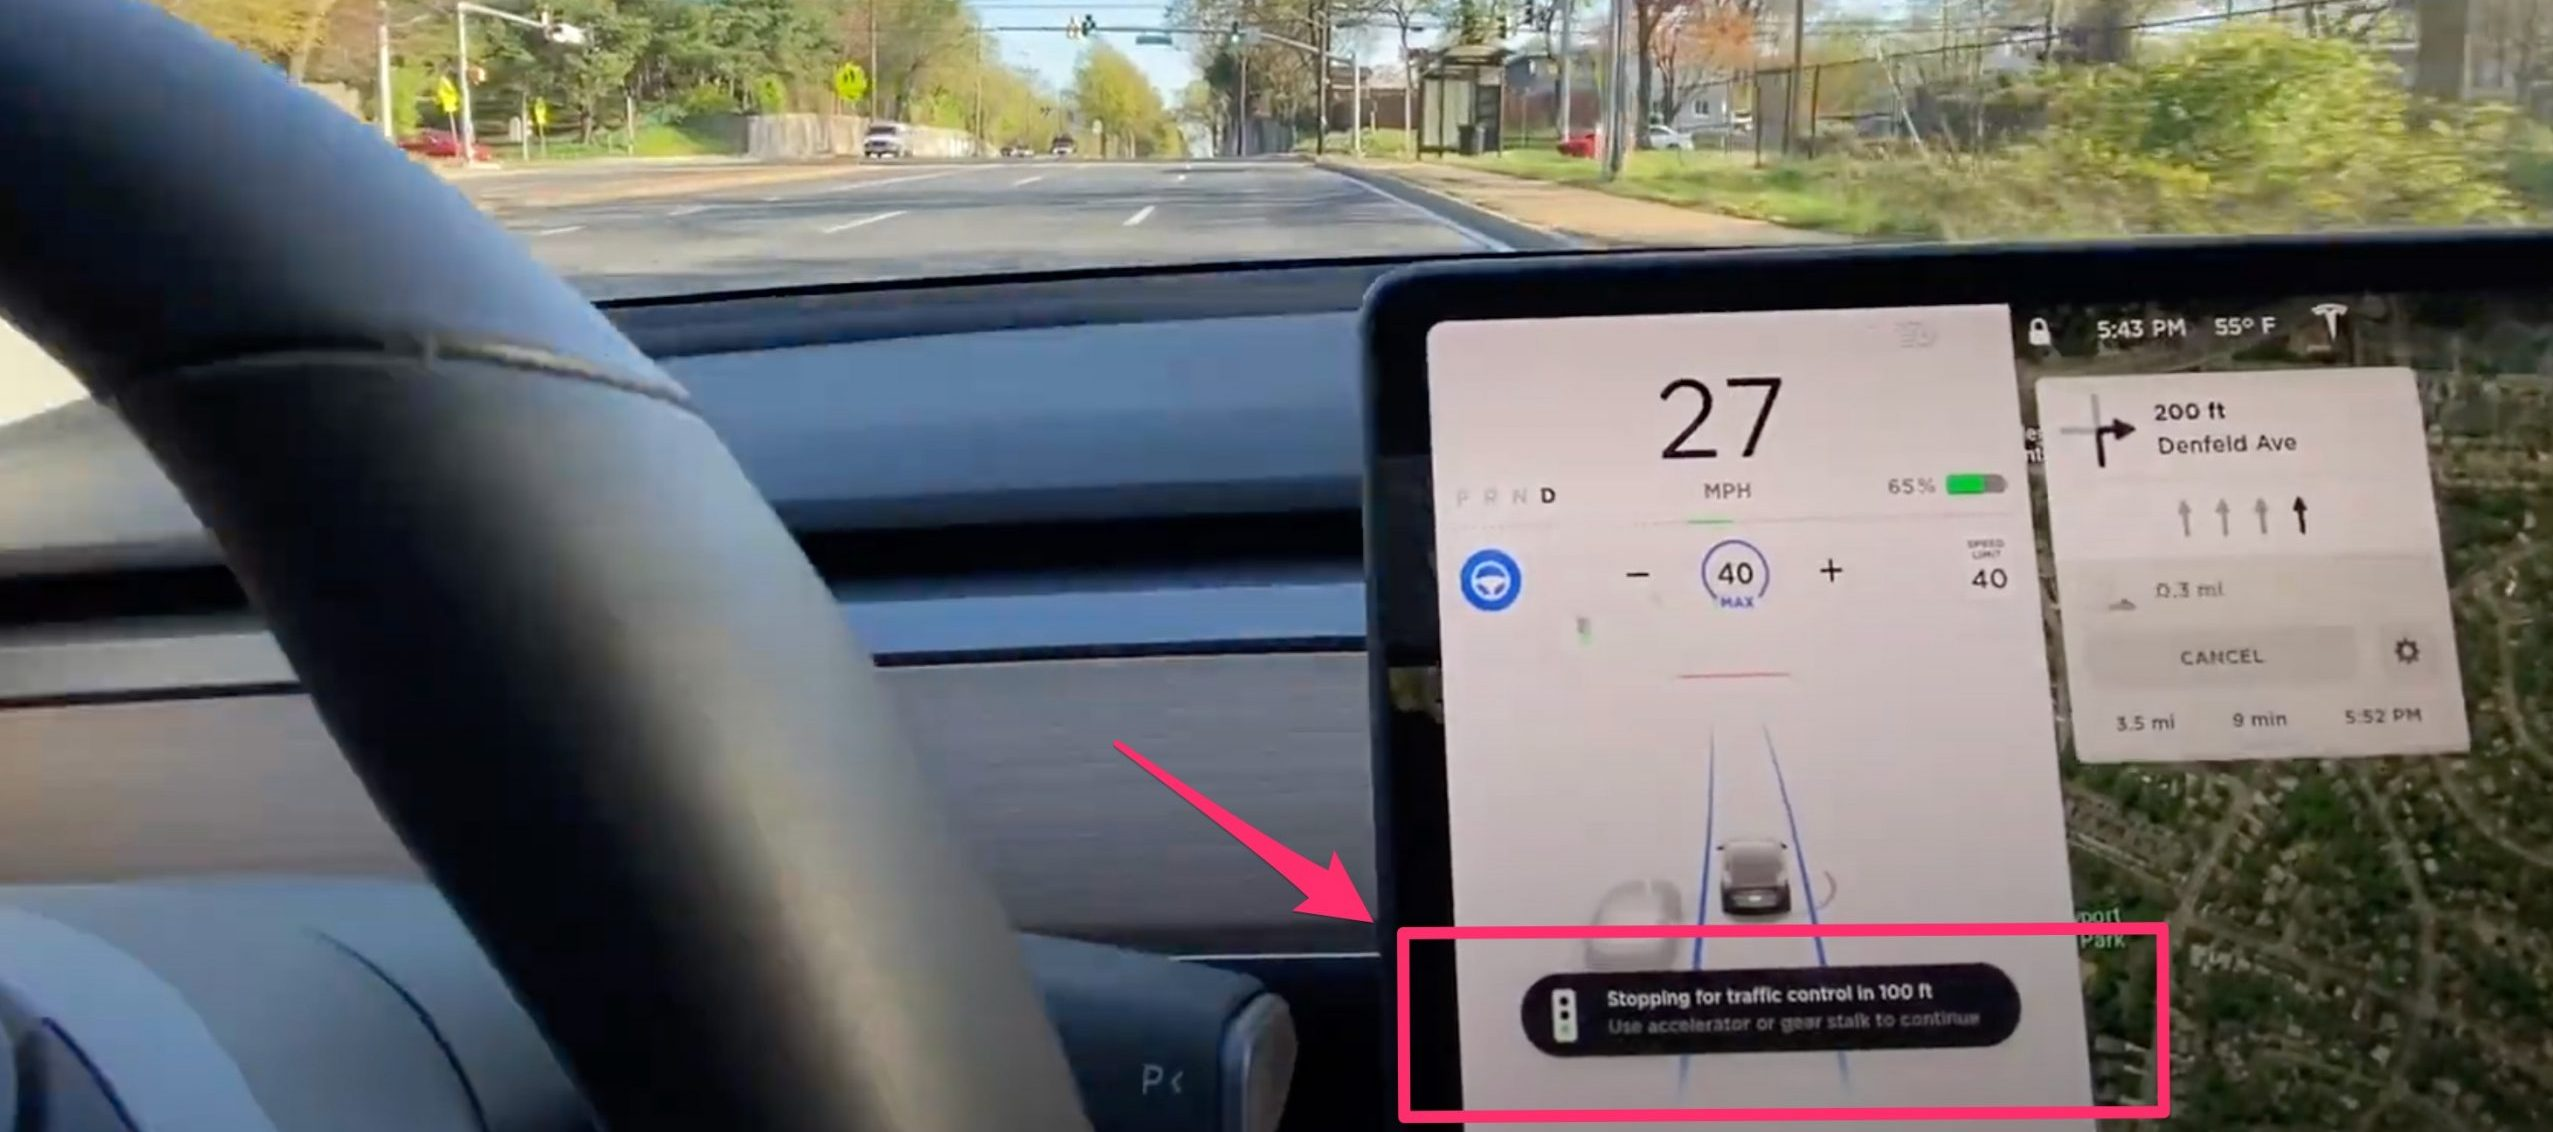 tesla-traffic-light-control-warning-message-crop